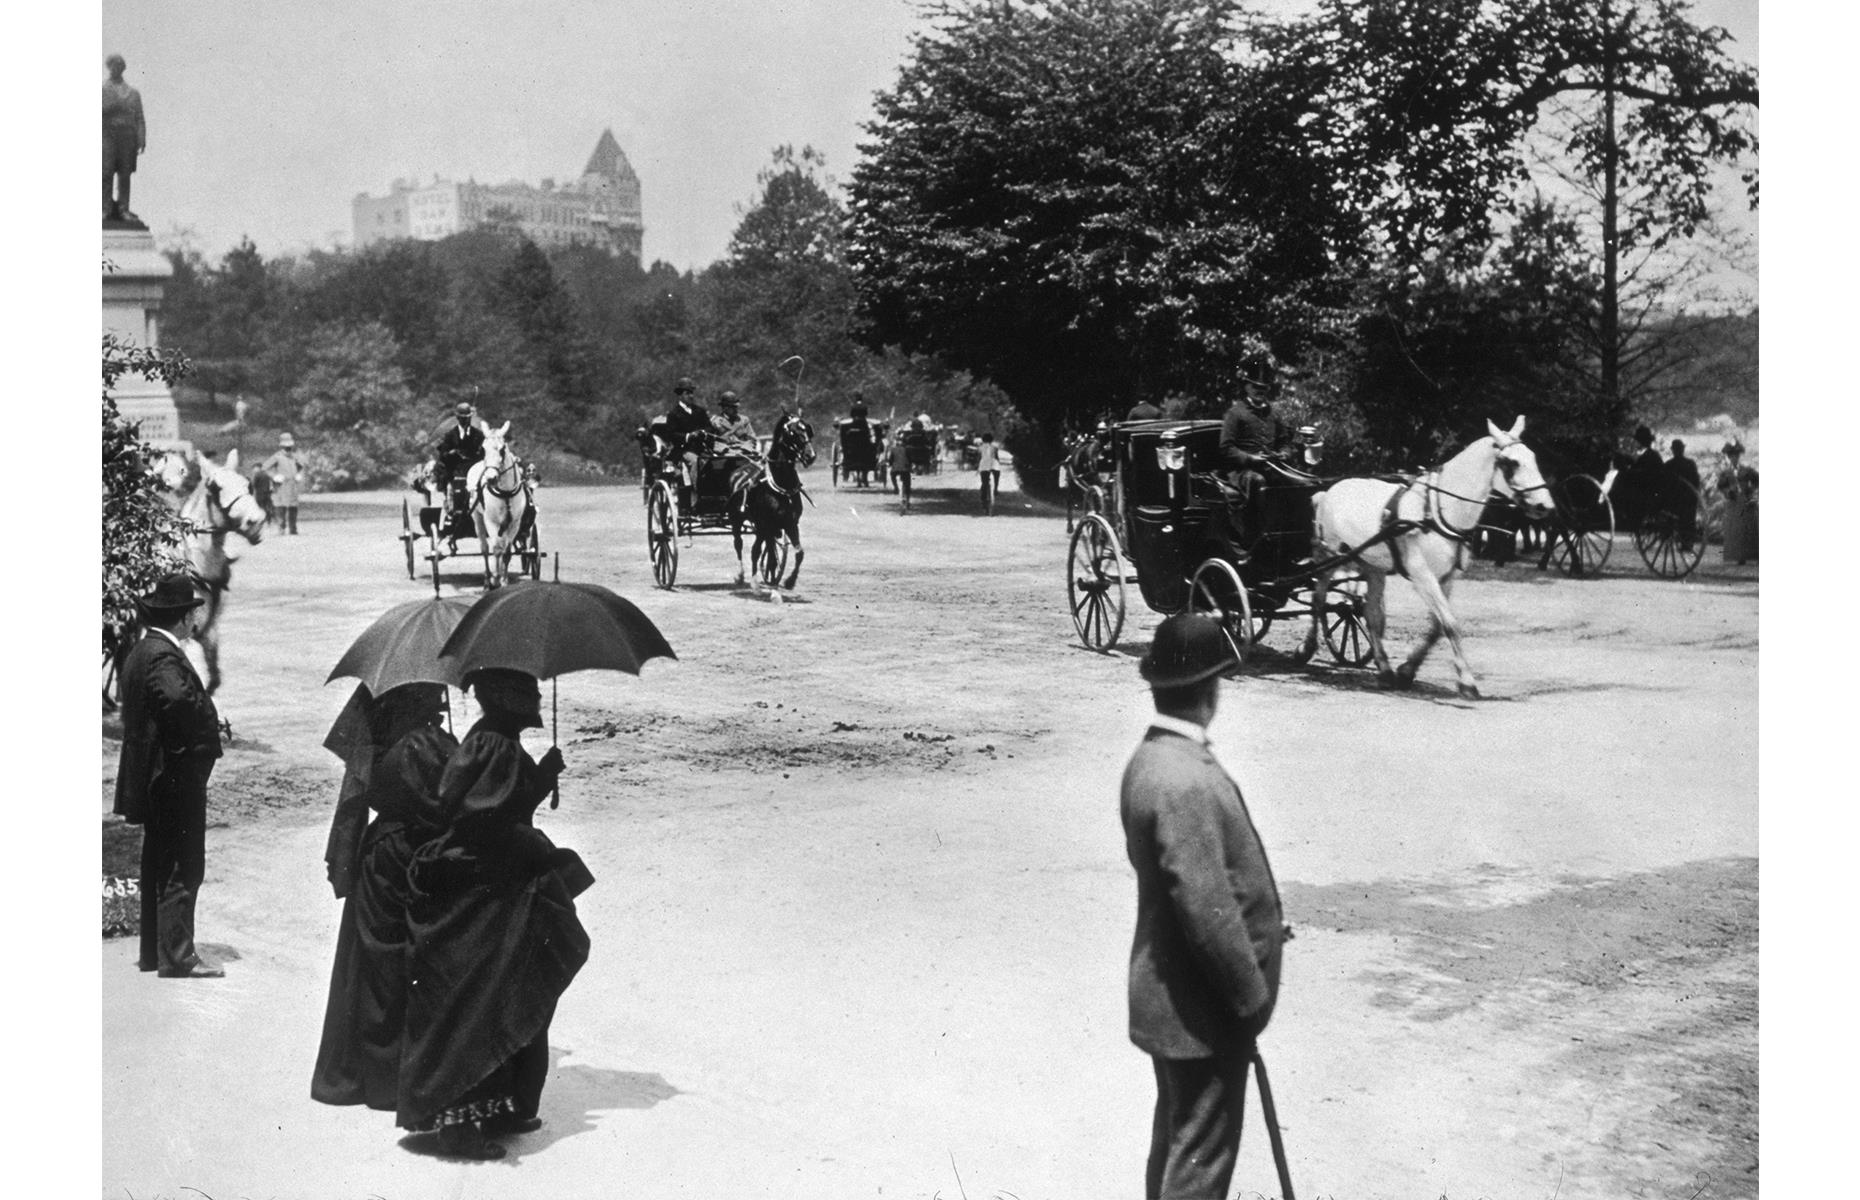 Slide 19 of 47: You can still take a carriage ride through Central Park, but back in the 19th century, the sight of tourists bundled into a horse-drawn coach was even more common. Here, in 1899, pedestrians watch on as gentle steeds clip-clop their way through the park. They're standing on the Mall, a pathway purposefully built to accommodate carriages.